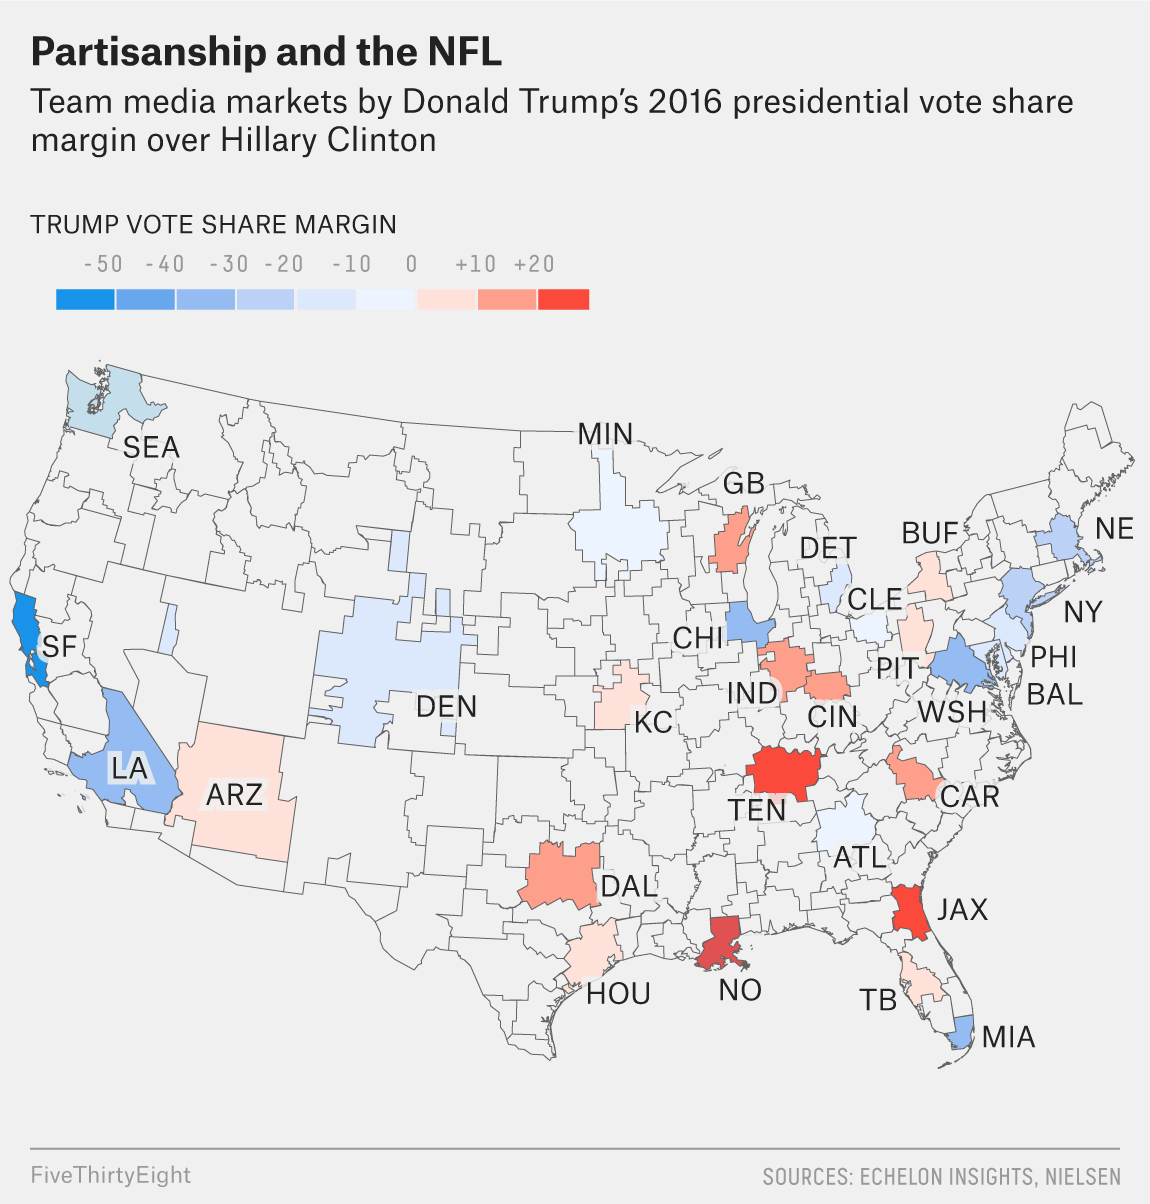 How Every NFL Team's Fans Lean Politically | FiveThirtyEight on map of nfl teams in usa, map of all disney, map of favorite nfl teams, map of all mls teams, us map nfl teams, central hockey league teams, us map of baseball teams, map nfl teams by fans, map of all cfl teams, map of nfl stadiums, map of all colleges, map of all mlb, map of all saints, map of all football players, map with nfl team division, map of the nfl, map of all animals, map of nfl teams poster, map of all new england, map of nfl cities,